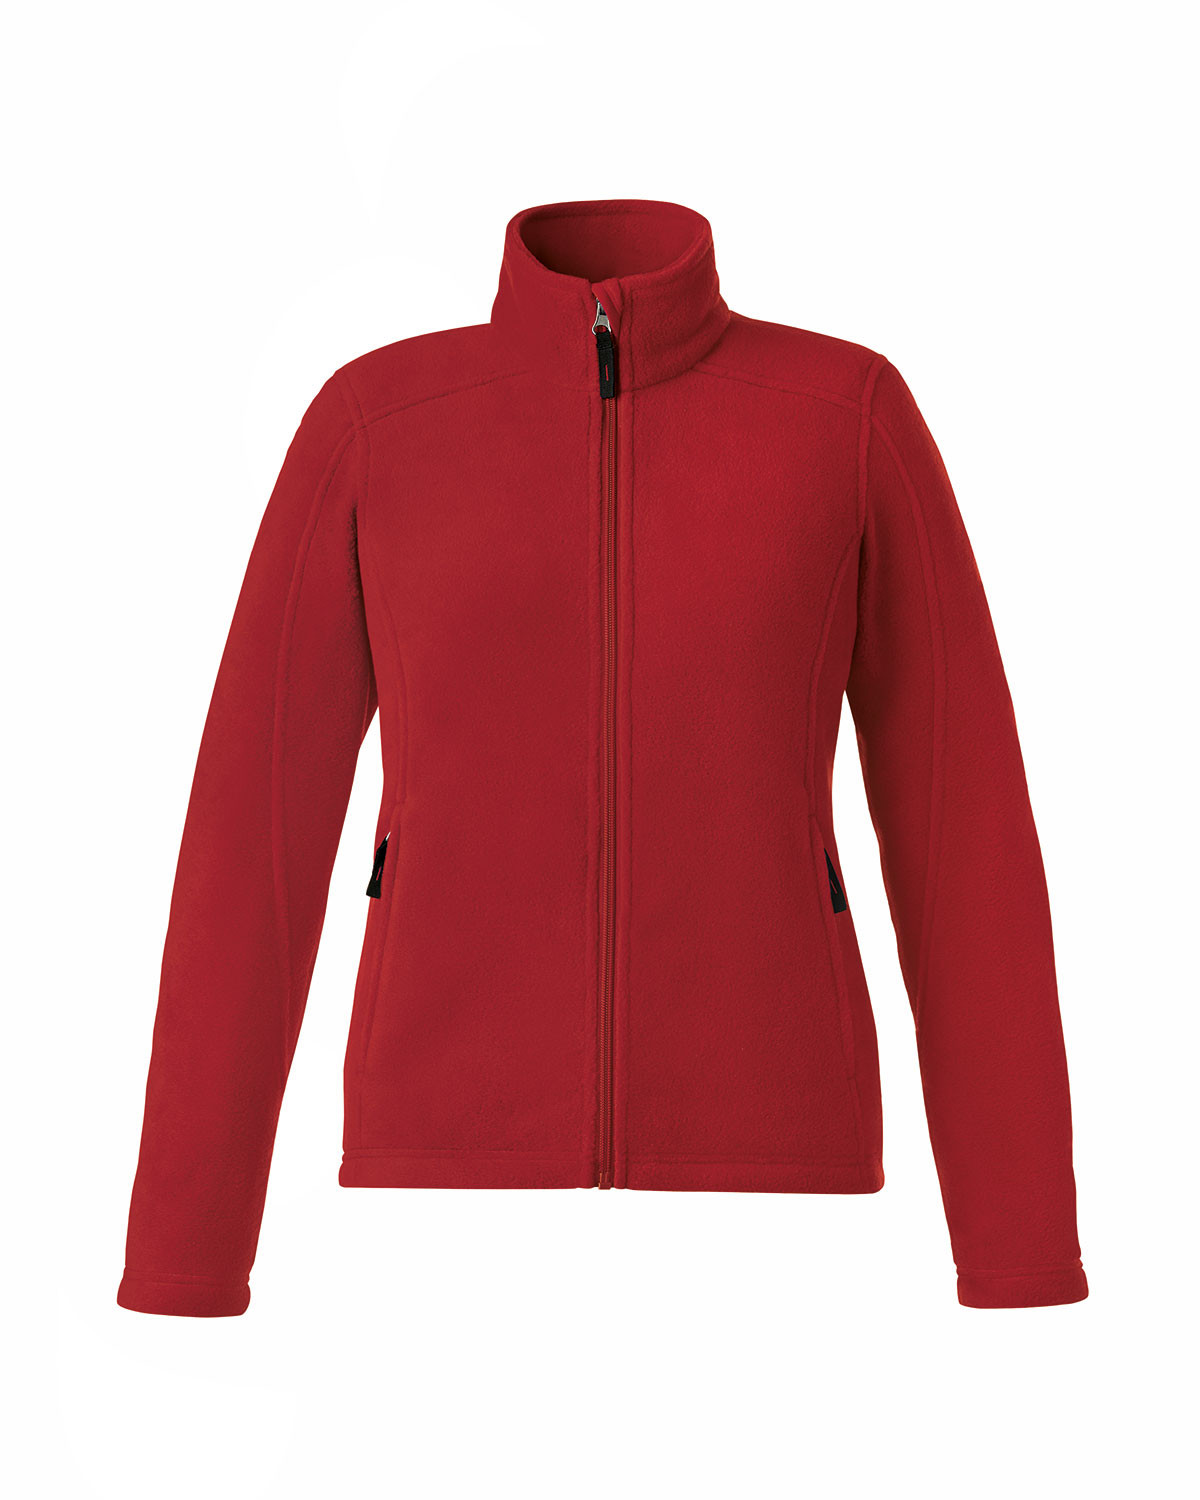 Ash City Core365 78190 - Jounrney Core365 Ladies' Fleece ...